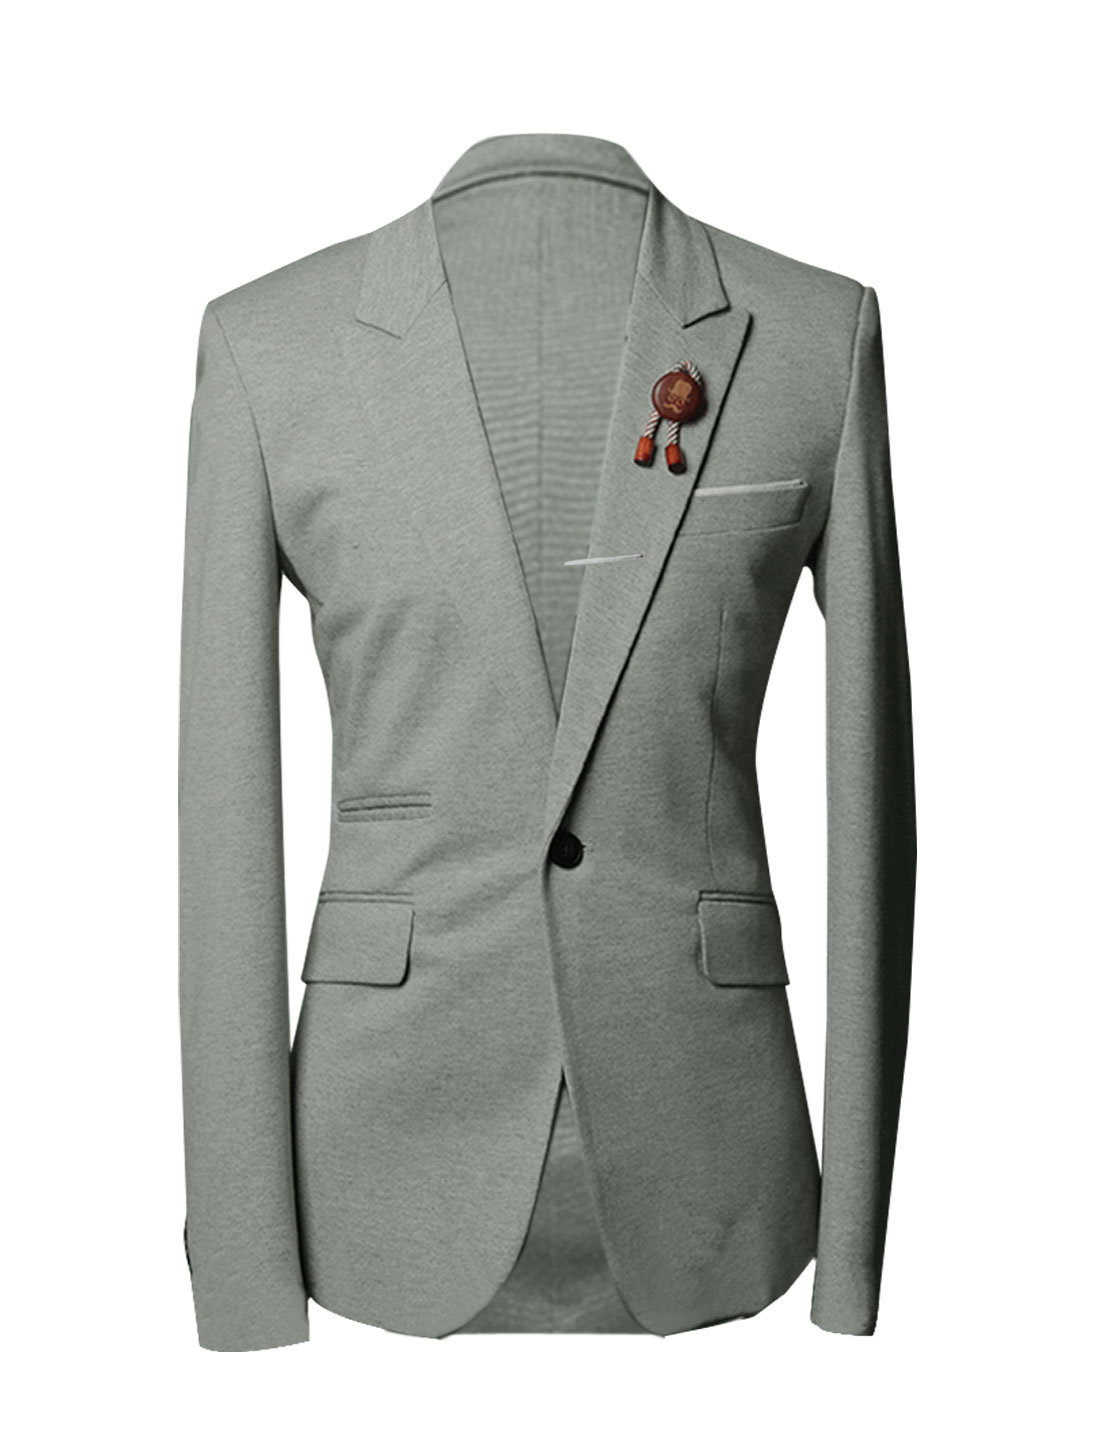 M Light Grey Patch Pockets Button Front Notched Lapel Blazer for Men